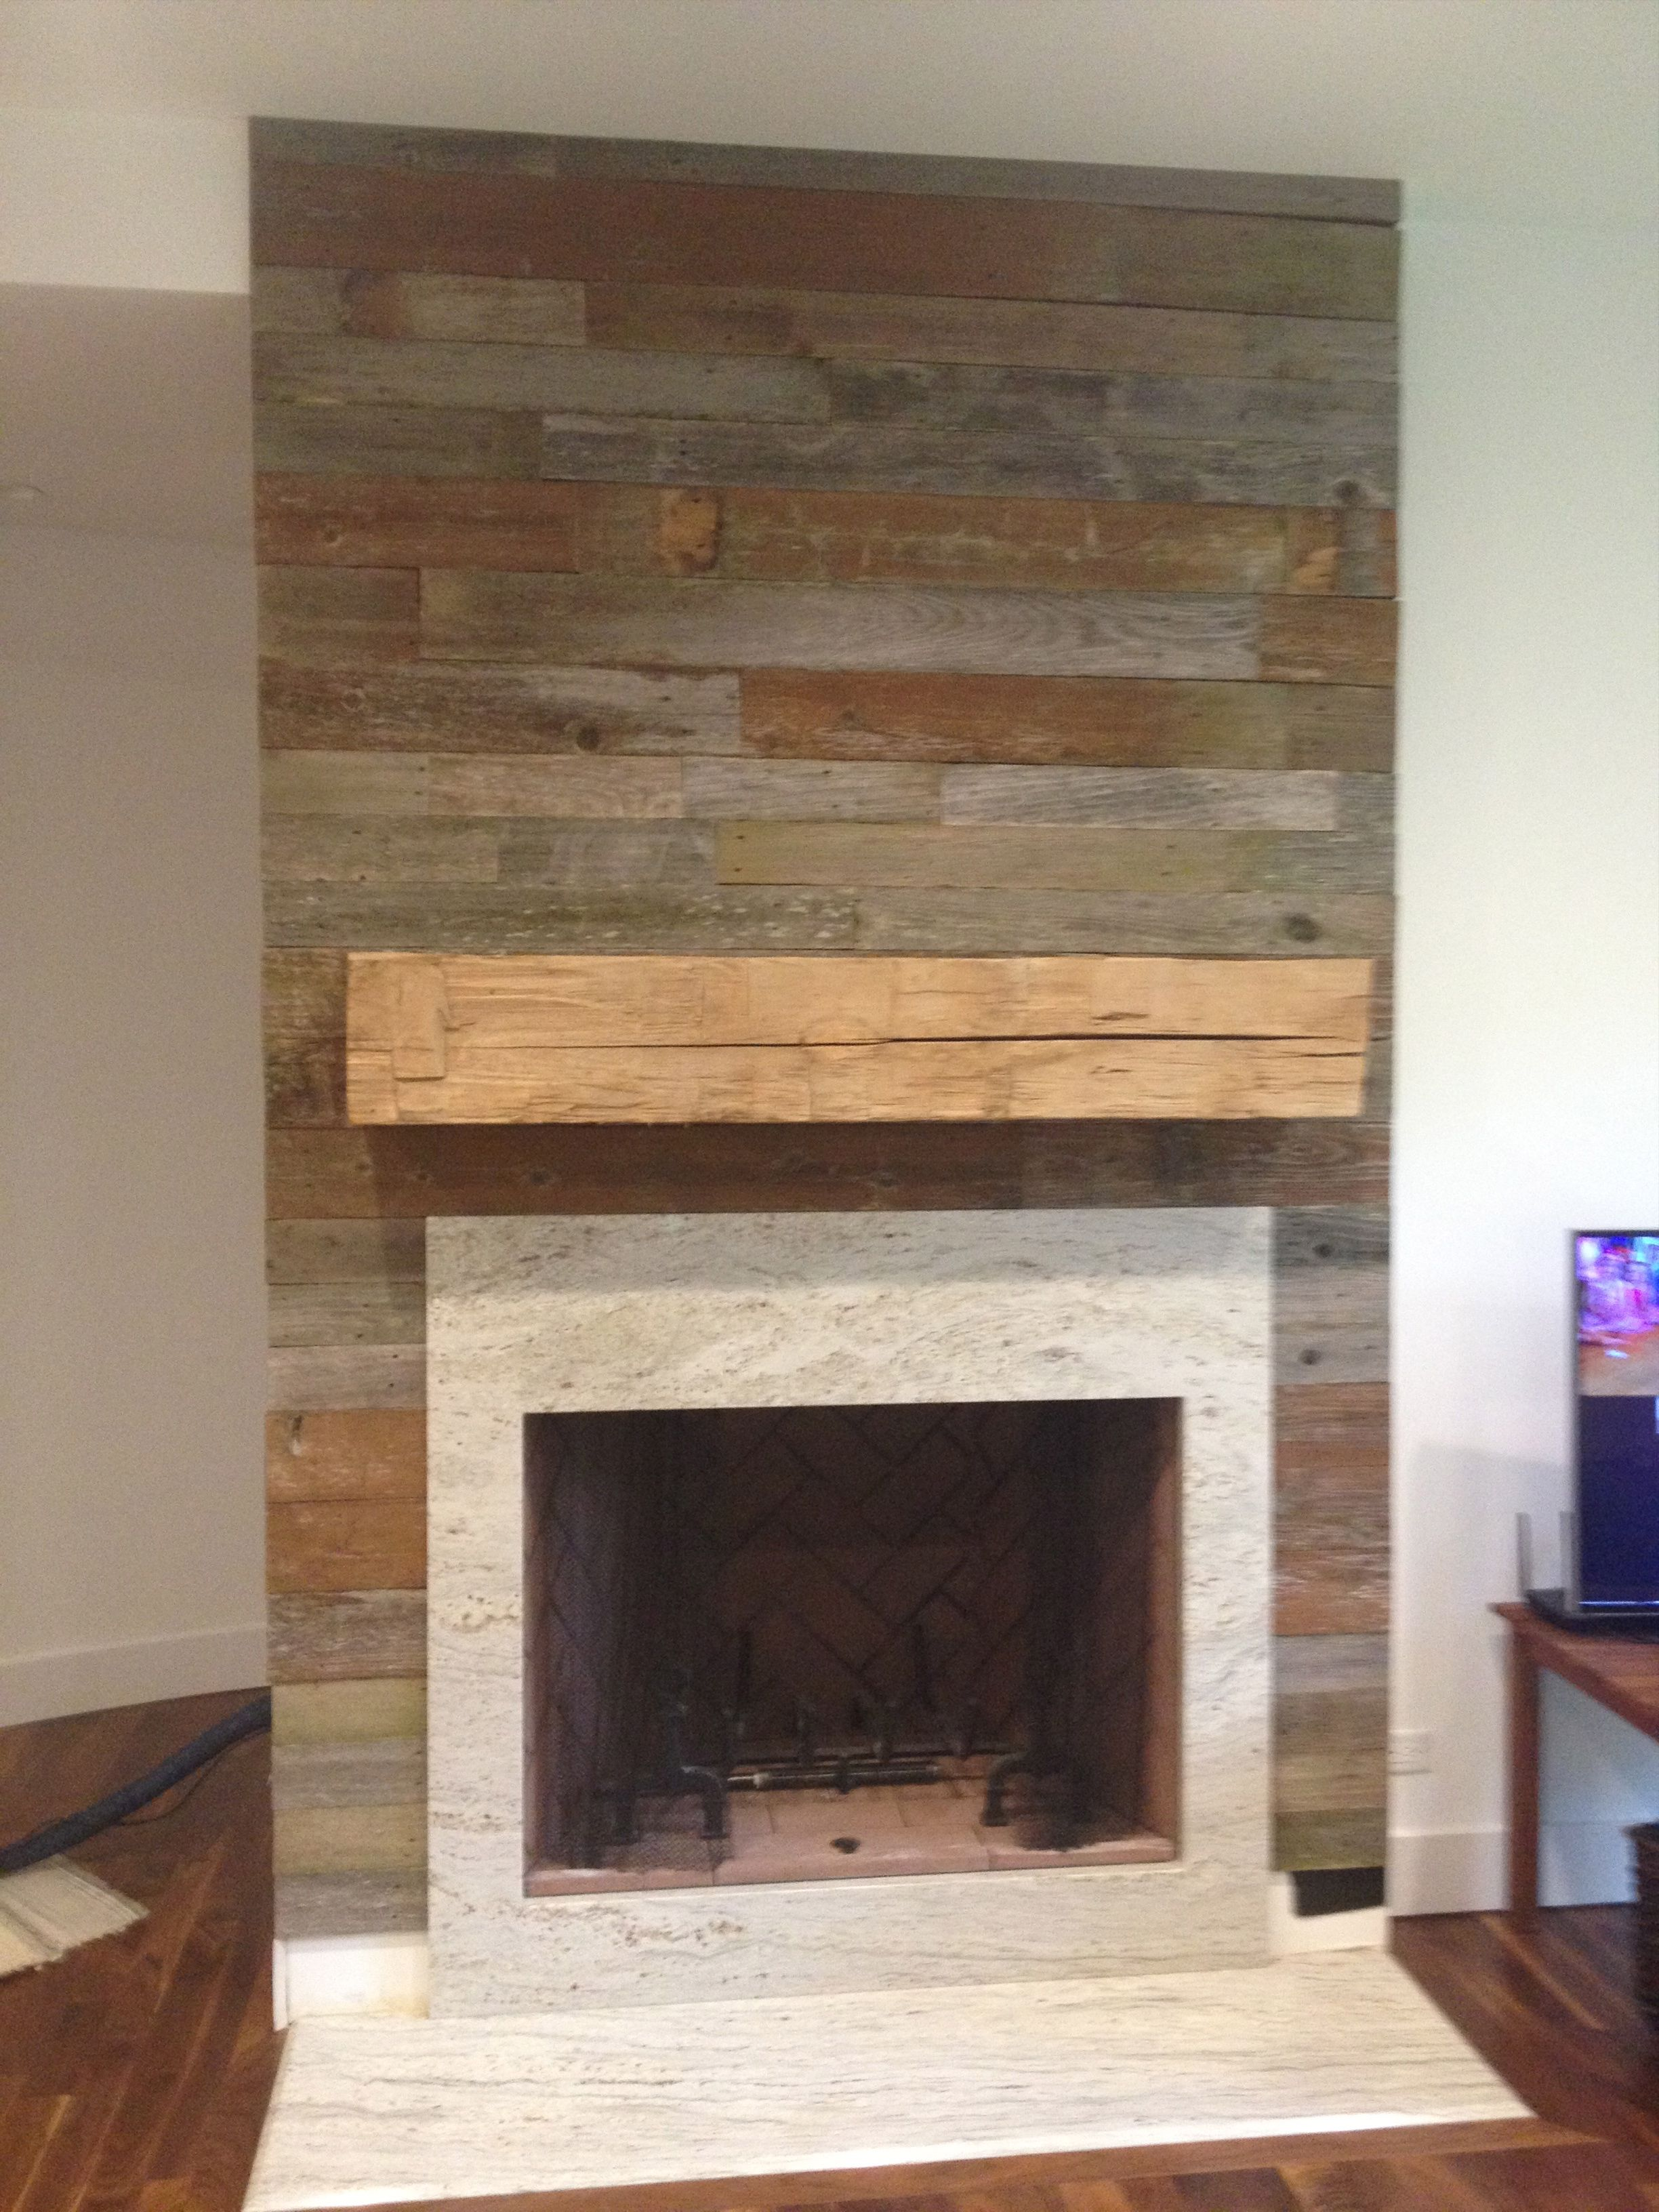 Reclaimed Wood Fireplace Surround And Mantel Fireplaces Pinterest Reclaimed Wood